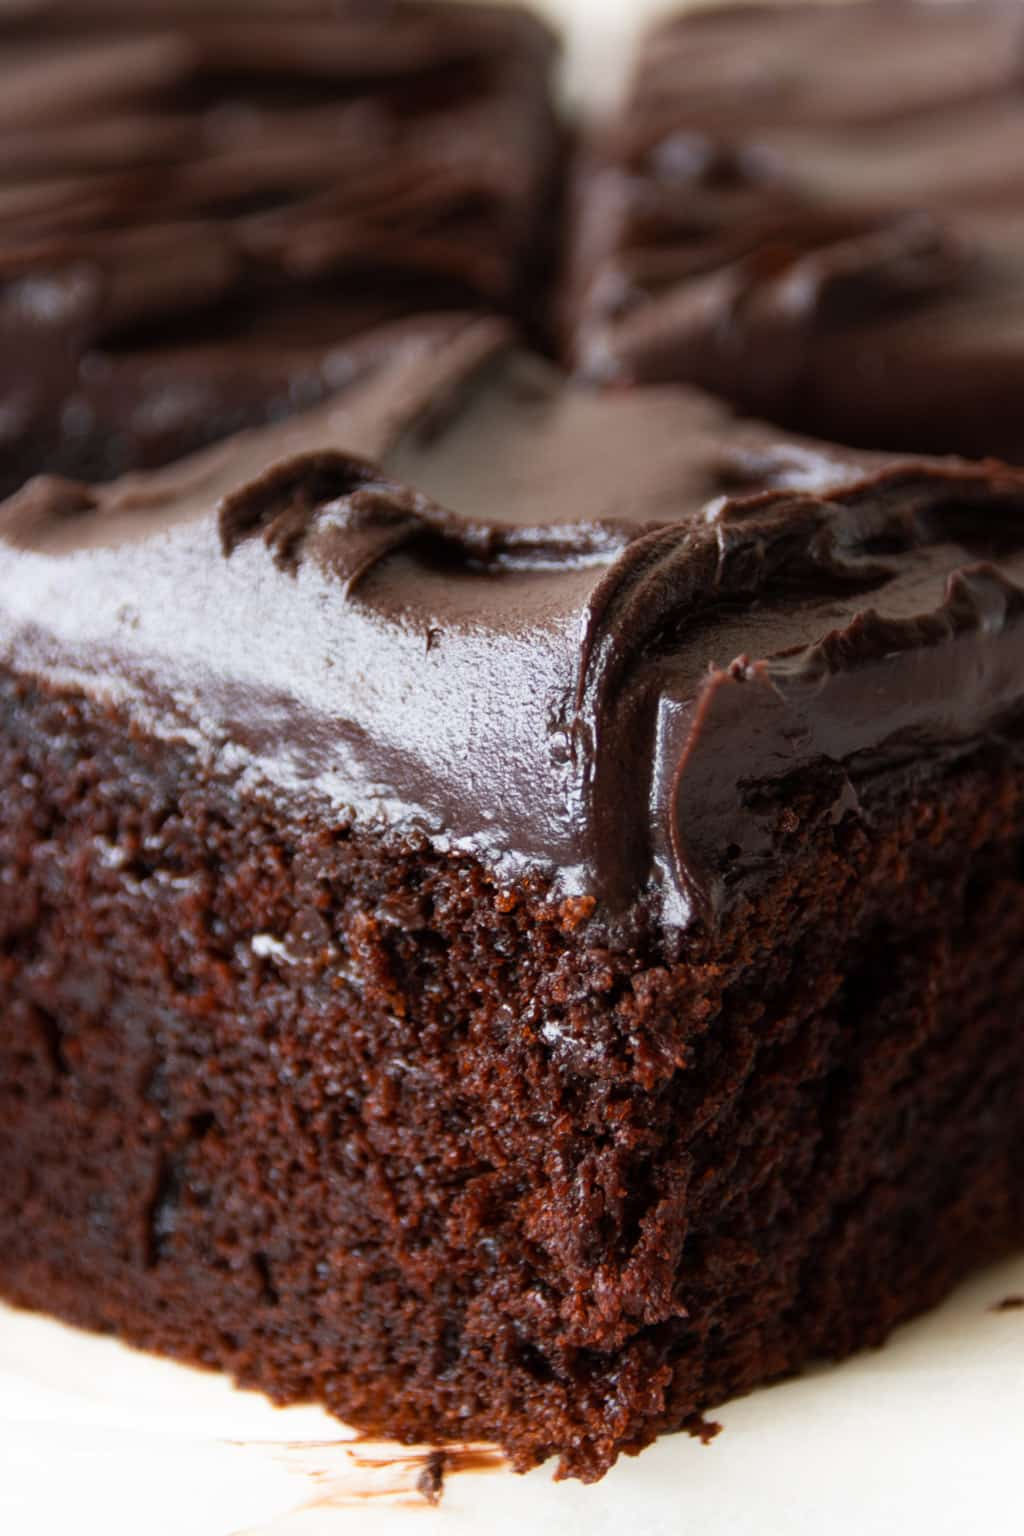 Close-up view of chocolate cake's moist and tender crumb